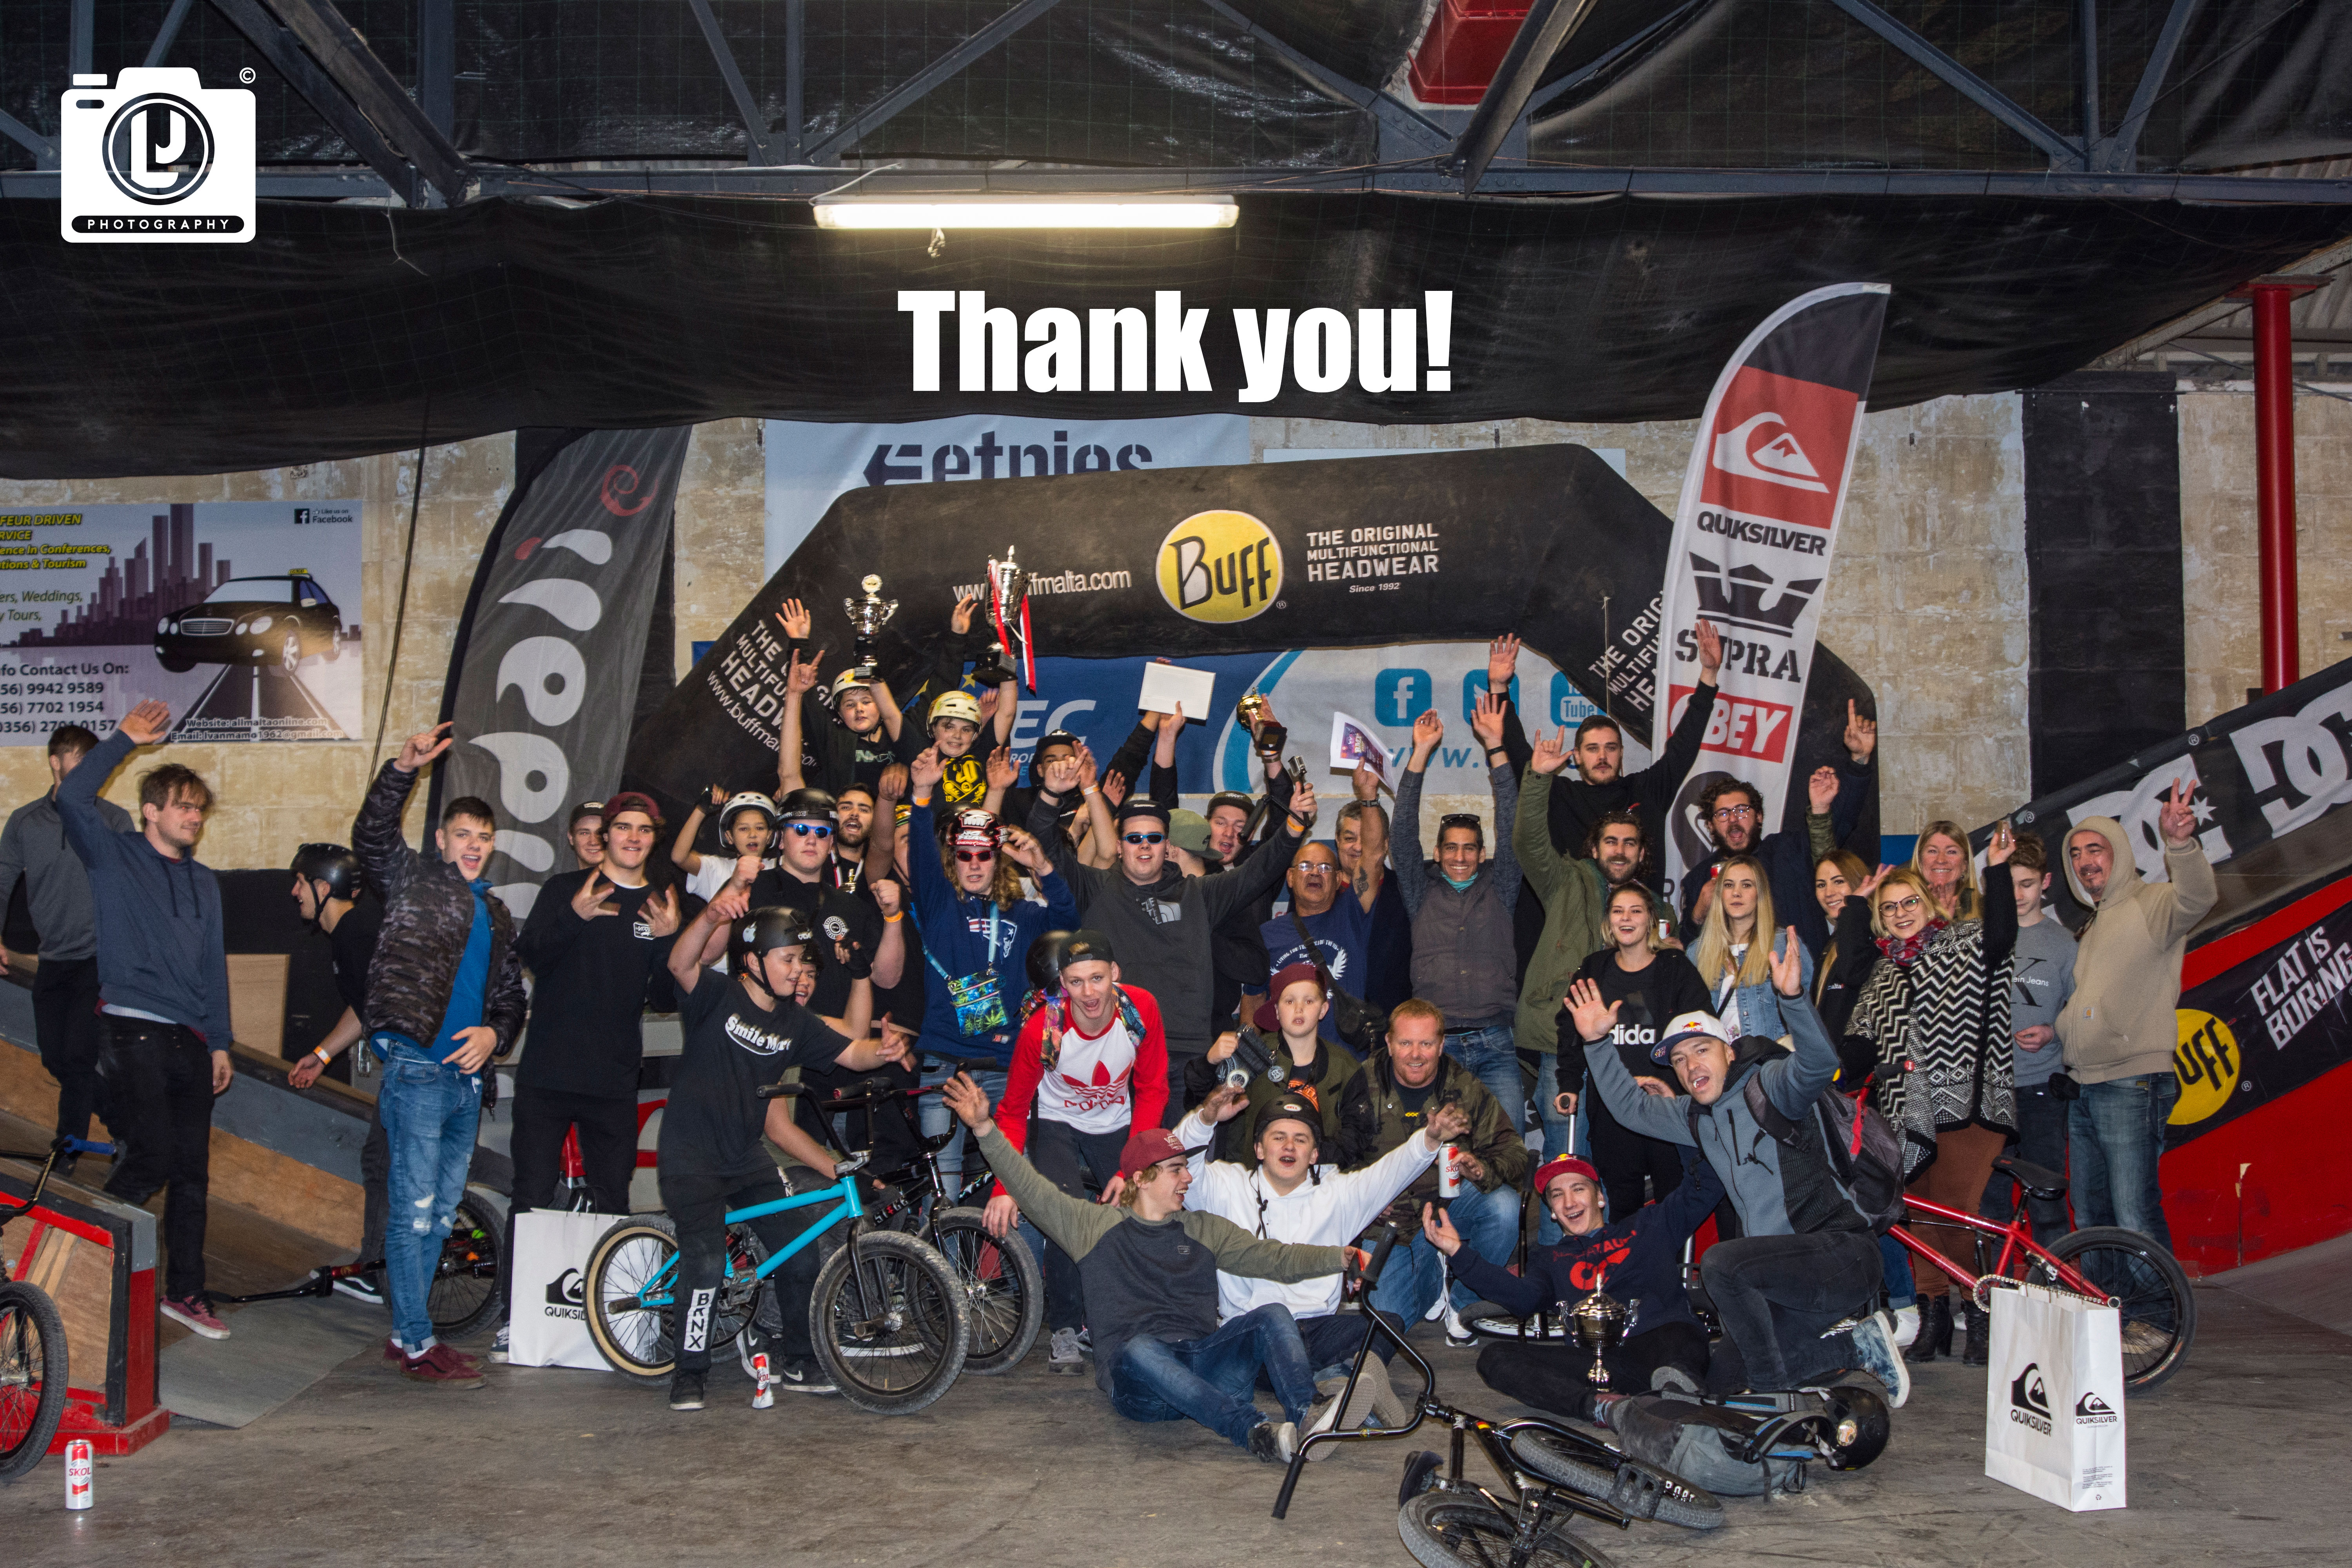 BMX FEST – Xmas 2017 Success! Thank you all!